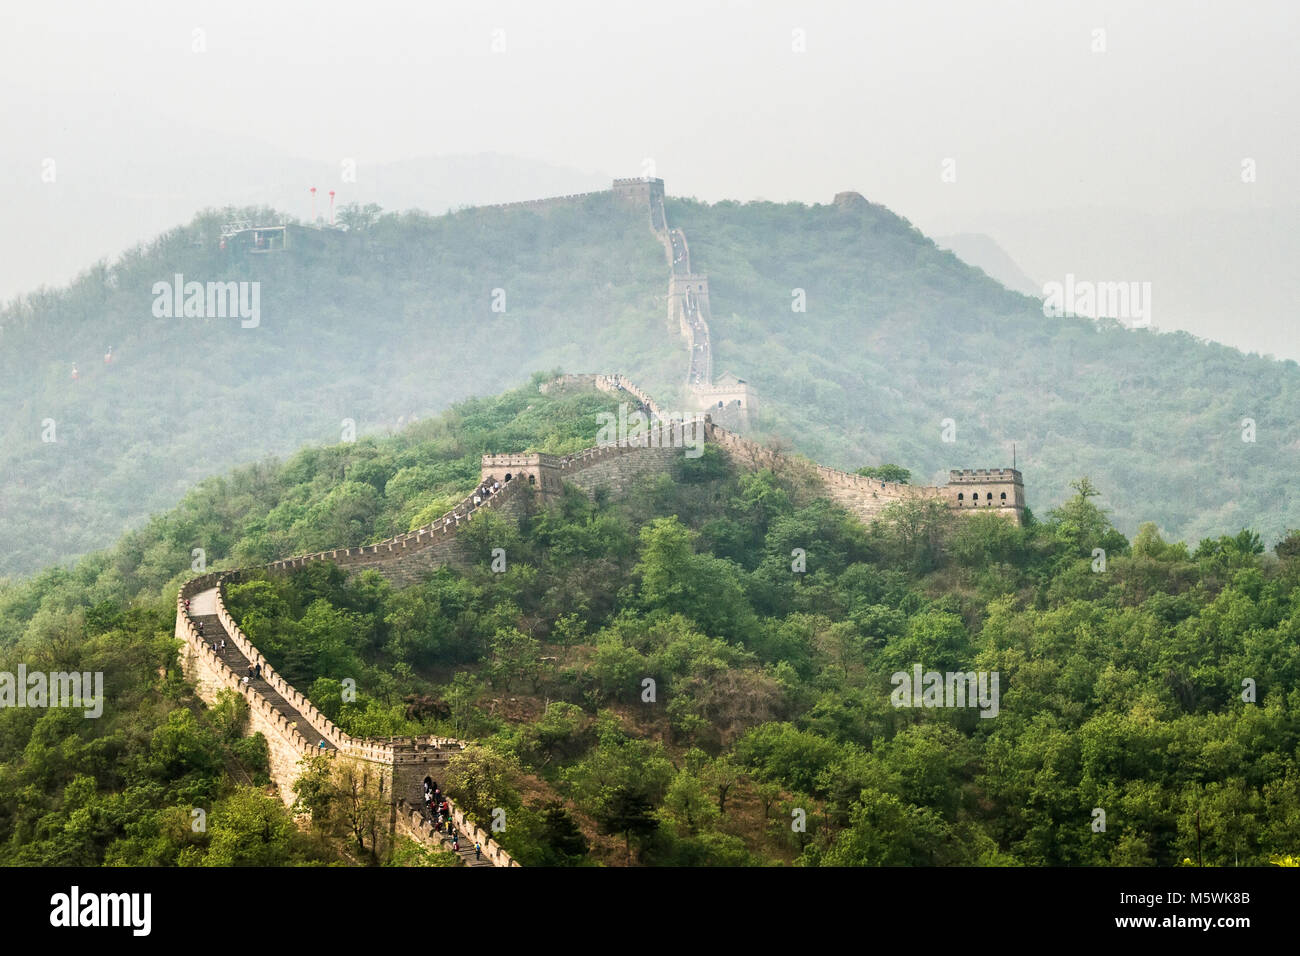 China, Great Wall of China, Mutianyu - Stock Image